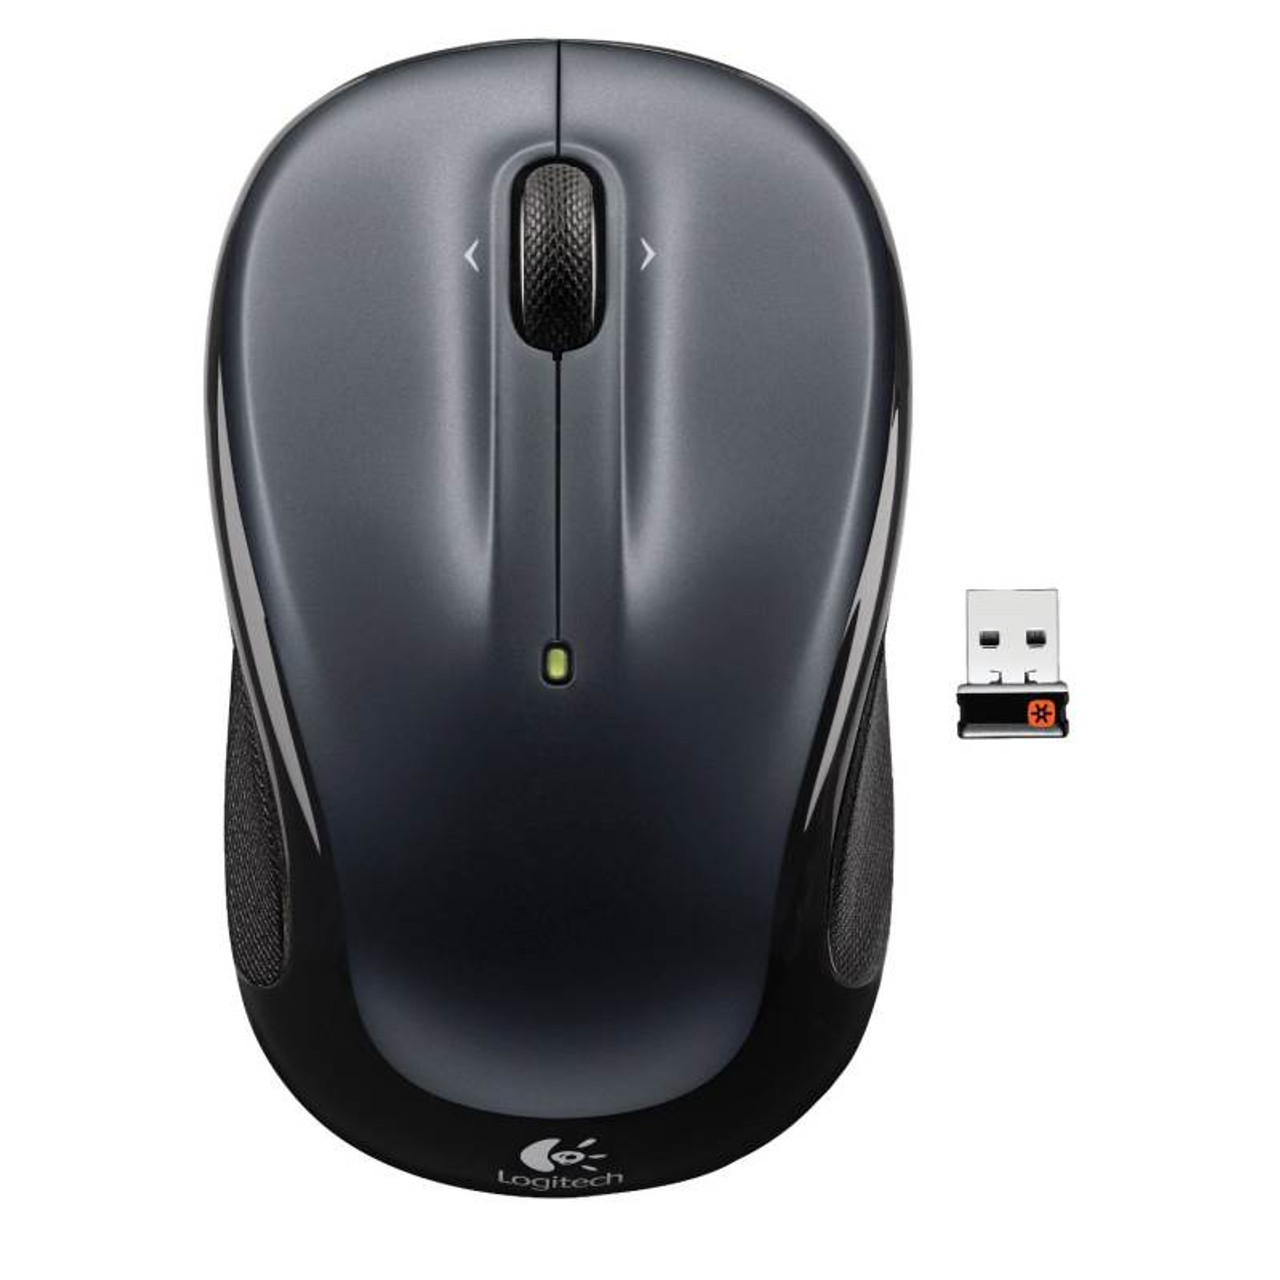 Product image for Logitech M325 Wireless Mouse - Dark Silver   CX Computer Superstore